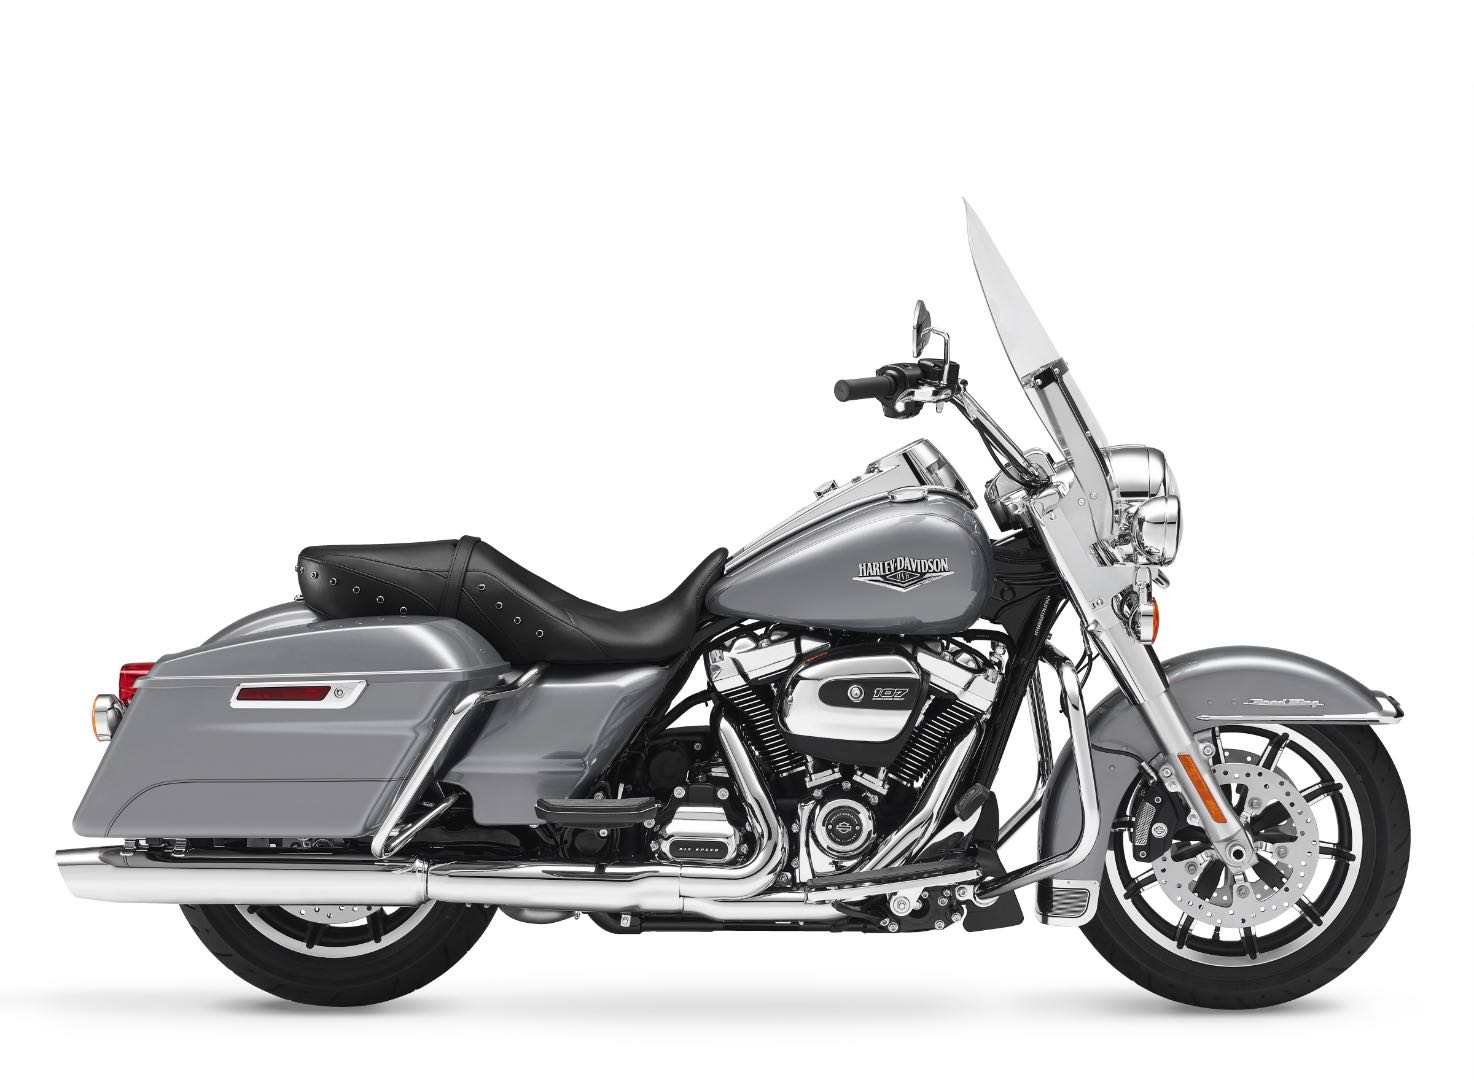 2017 harley davidson road king buyer 39 s guide specs price. Black Bedroom Furniture Sets. Home Design Ideas